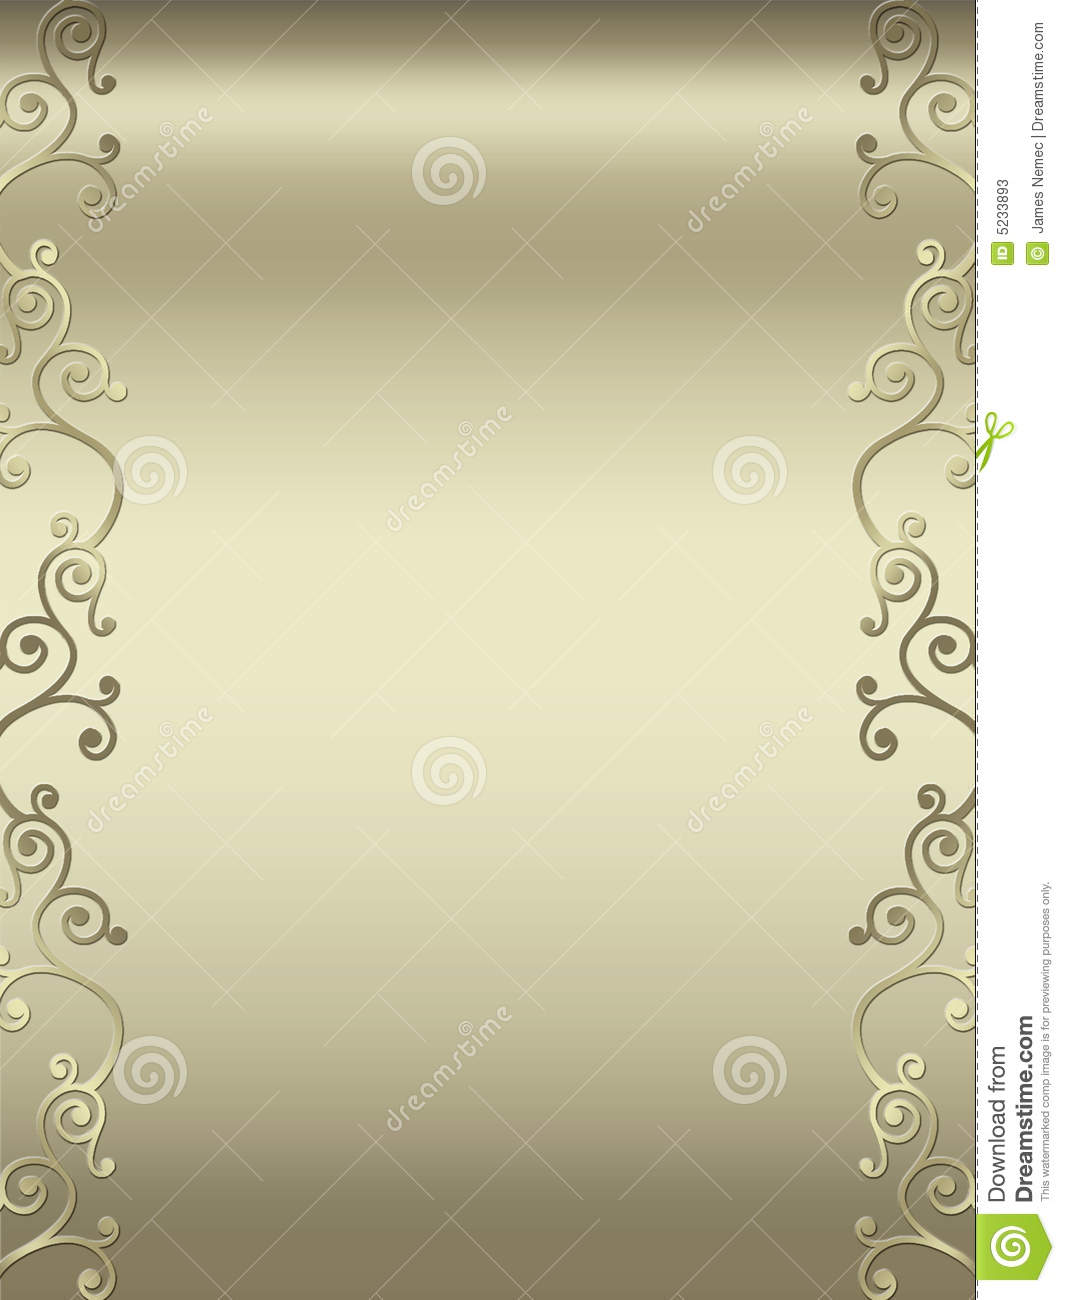 designs borders wallpapers 1849 - photo #24